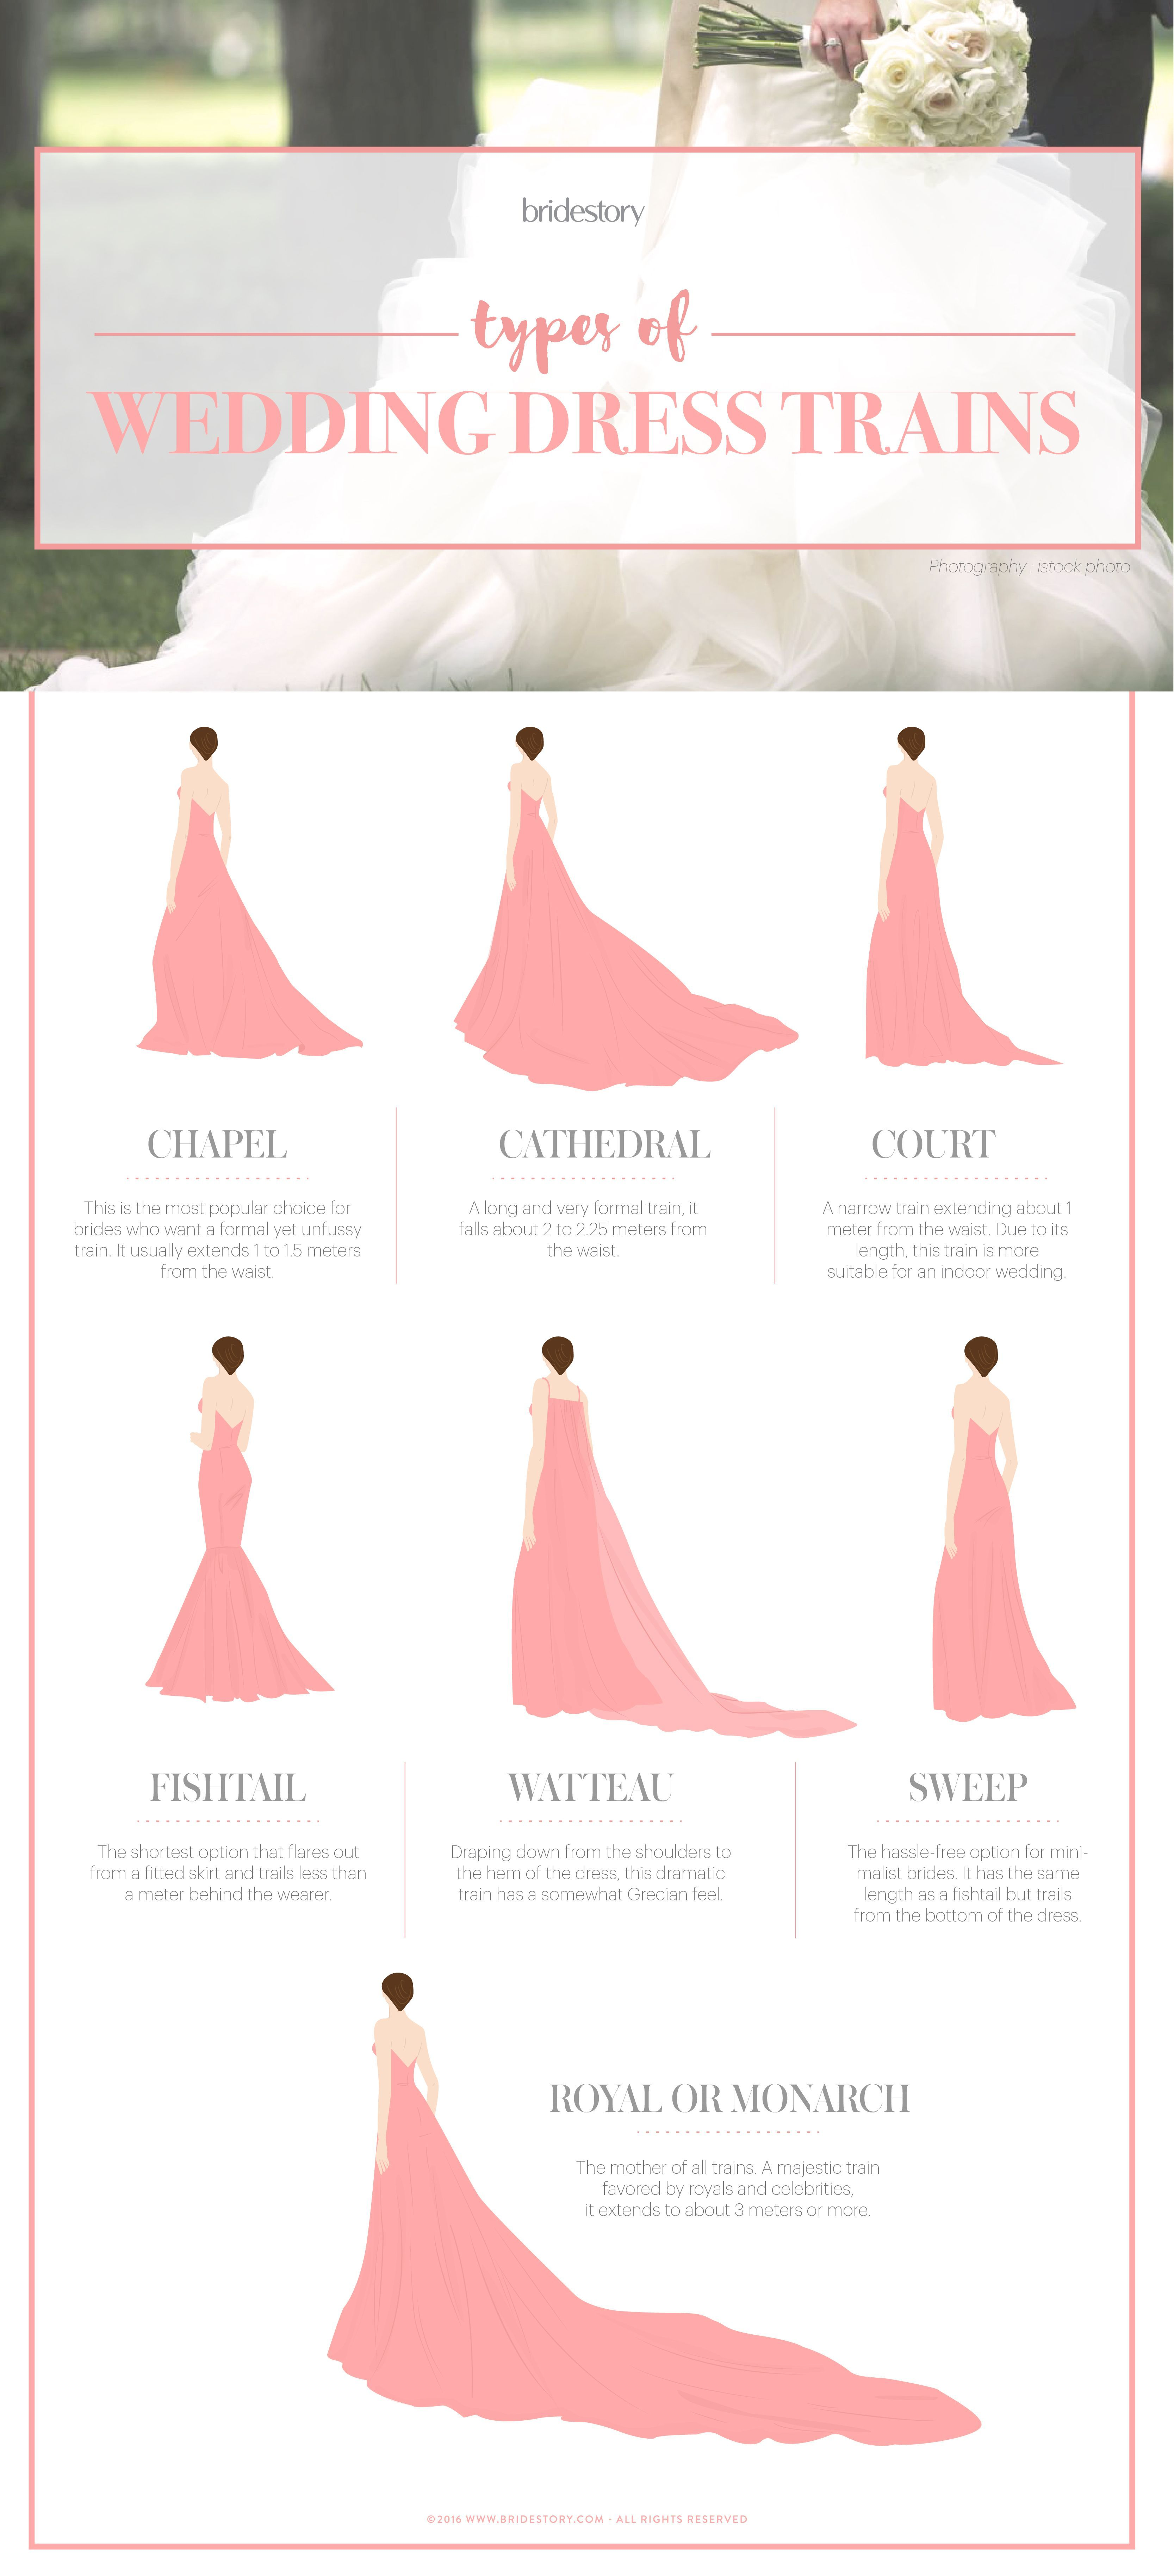 The Bride's Guide to Finding the Perfect Wedding Dress - Bridestory Blog | Wedding  dress types, Wedding dress train, Perfect wedding dress